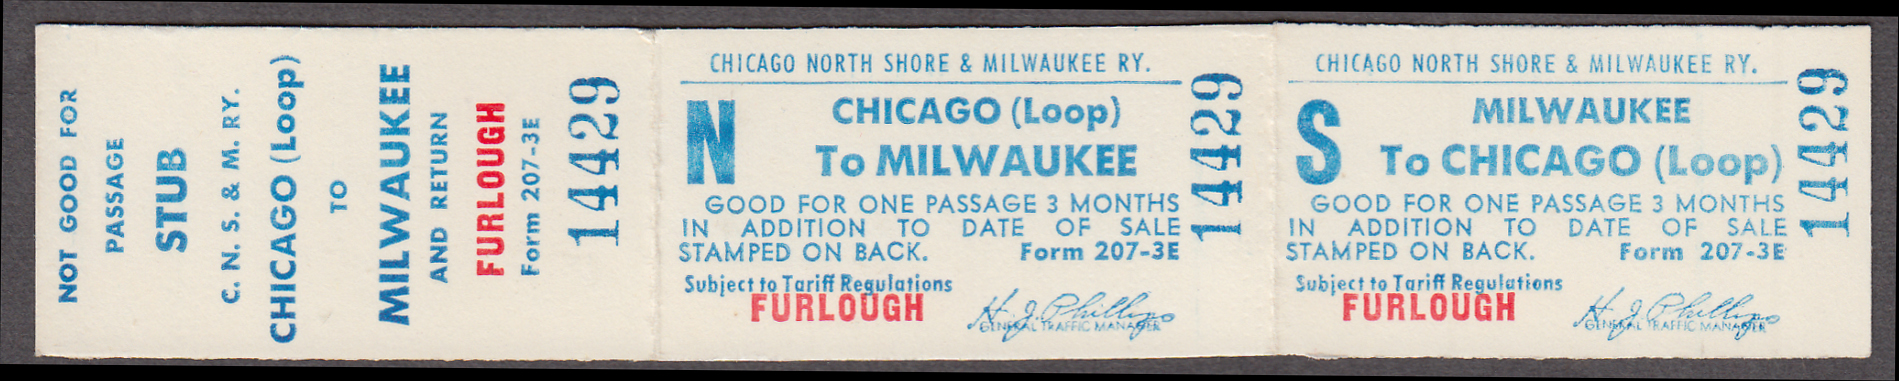 Image for Chicago North Shore & Milwaukee Ry Chicago Loop-Milwaukee Furlough unused ticket